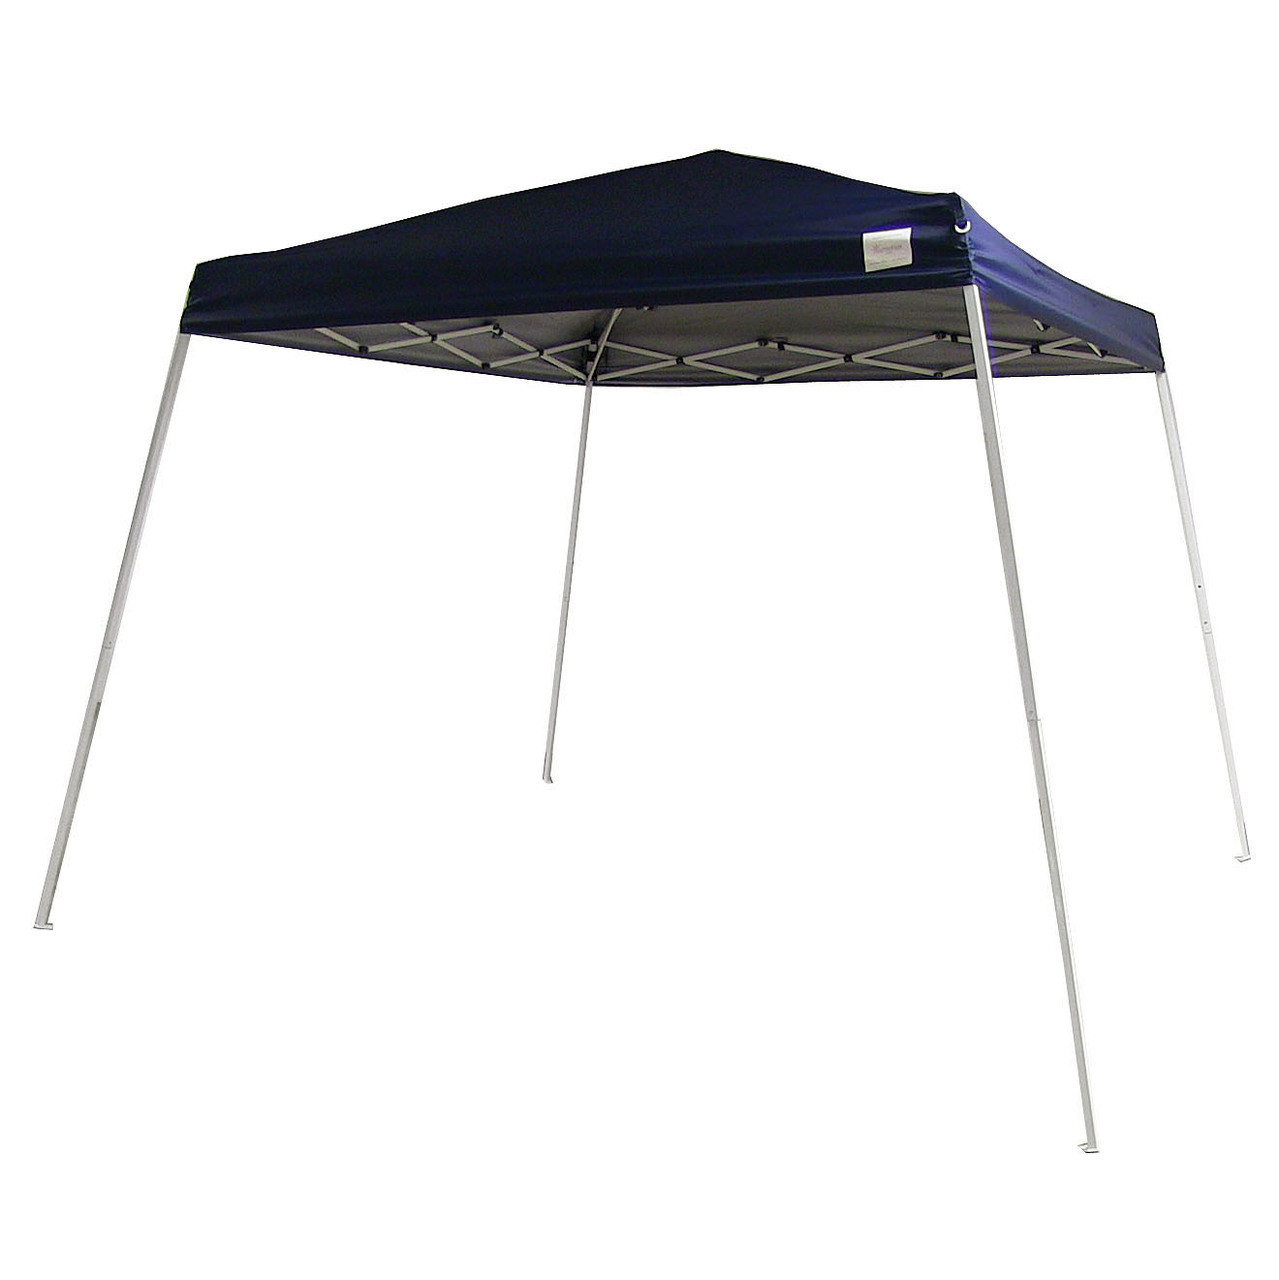 Sunnydaze Decor Quick-Up Canopy 8 Foot x 8 Foot and Top 10 Foot x 10 Foot Ground Slant Legs